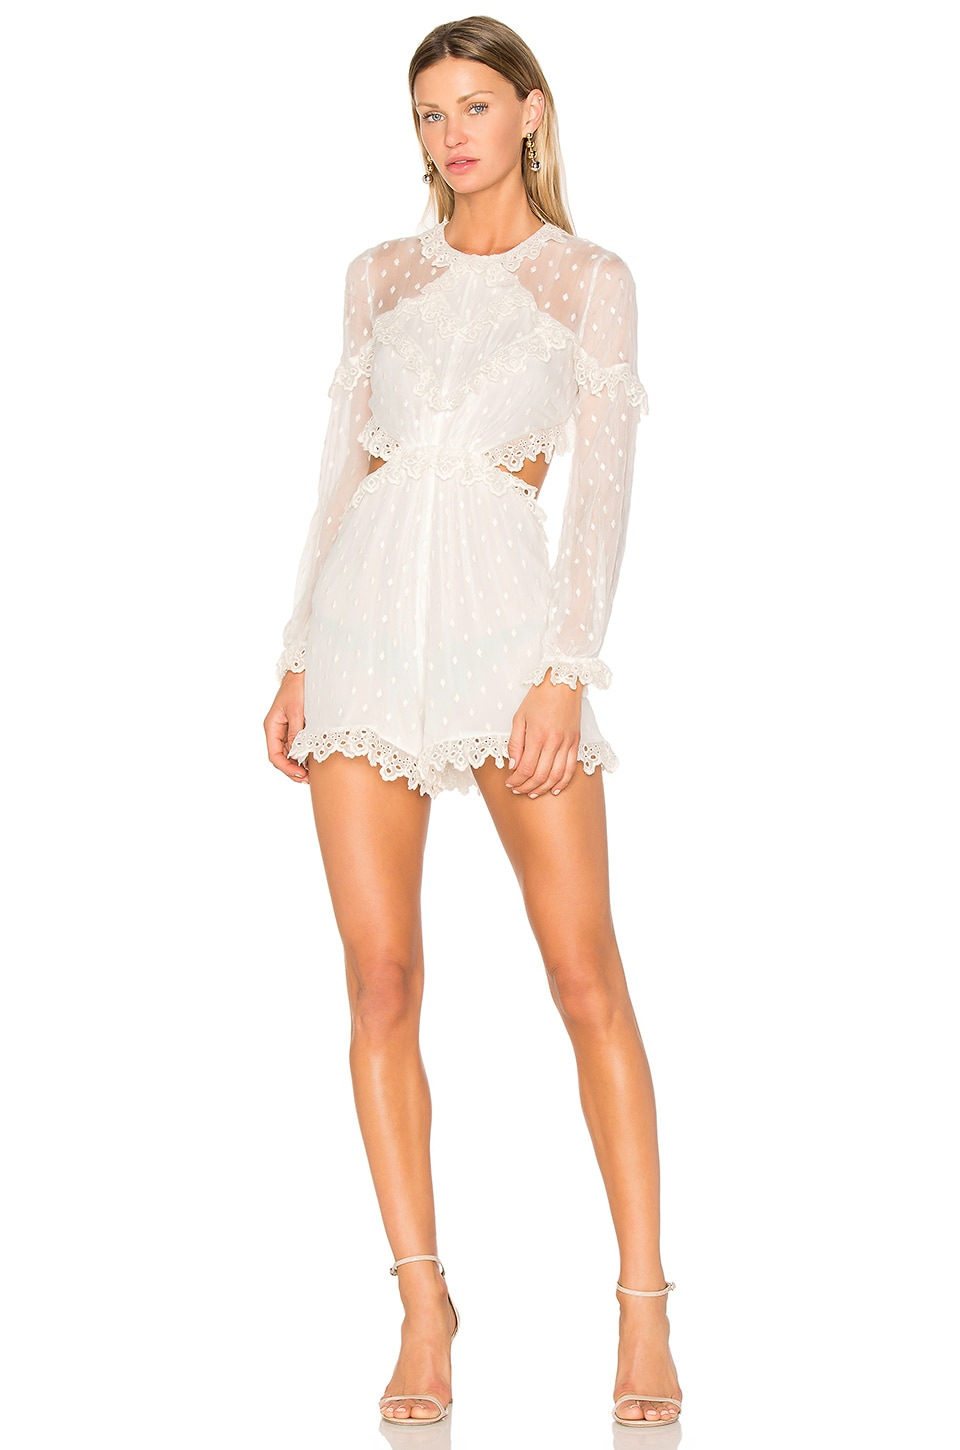 Divinity Scallop Romper by Zimmermann